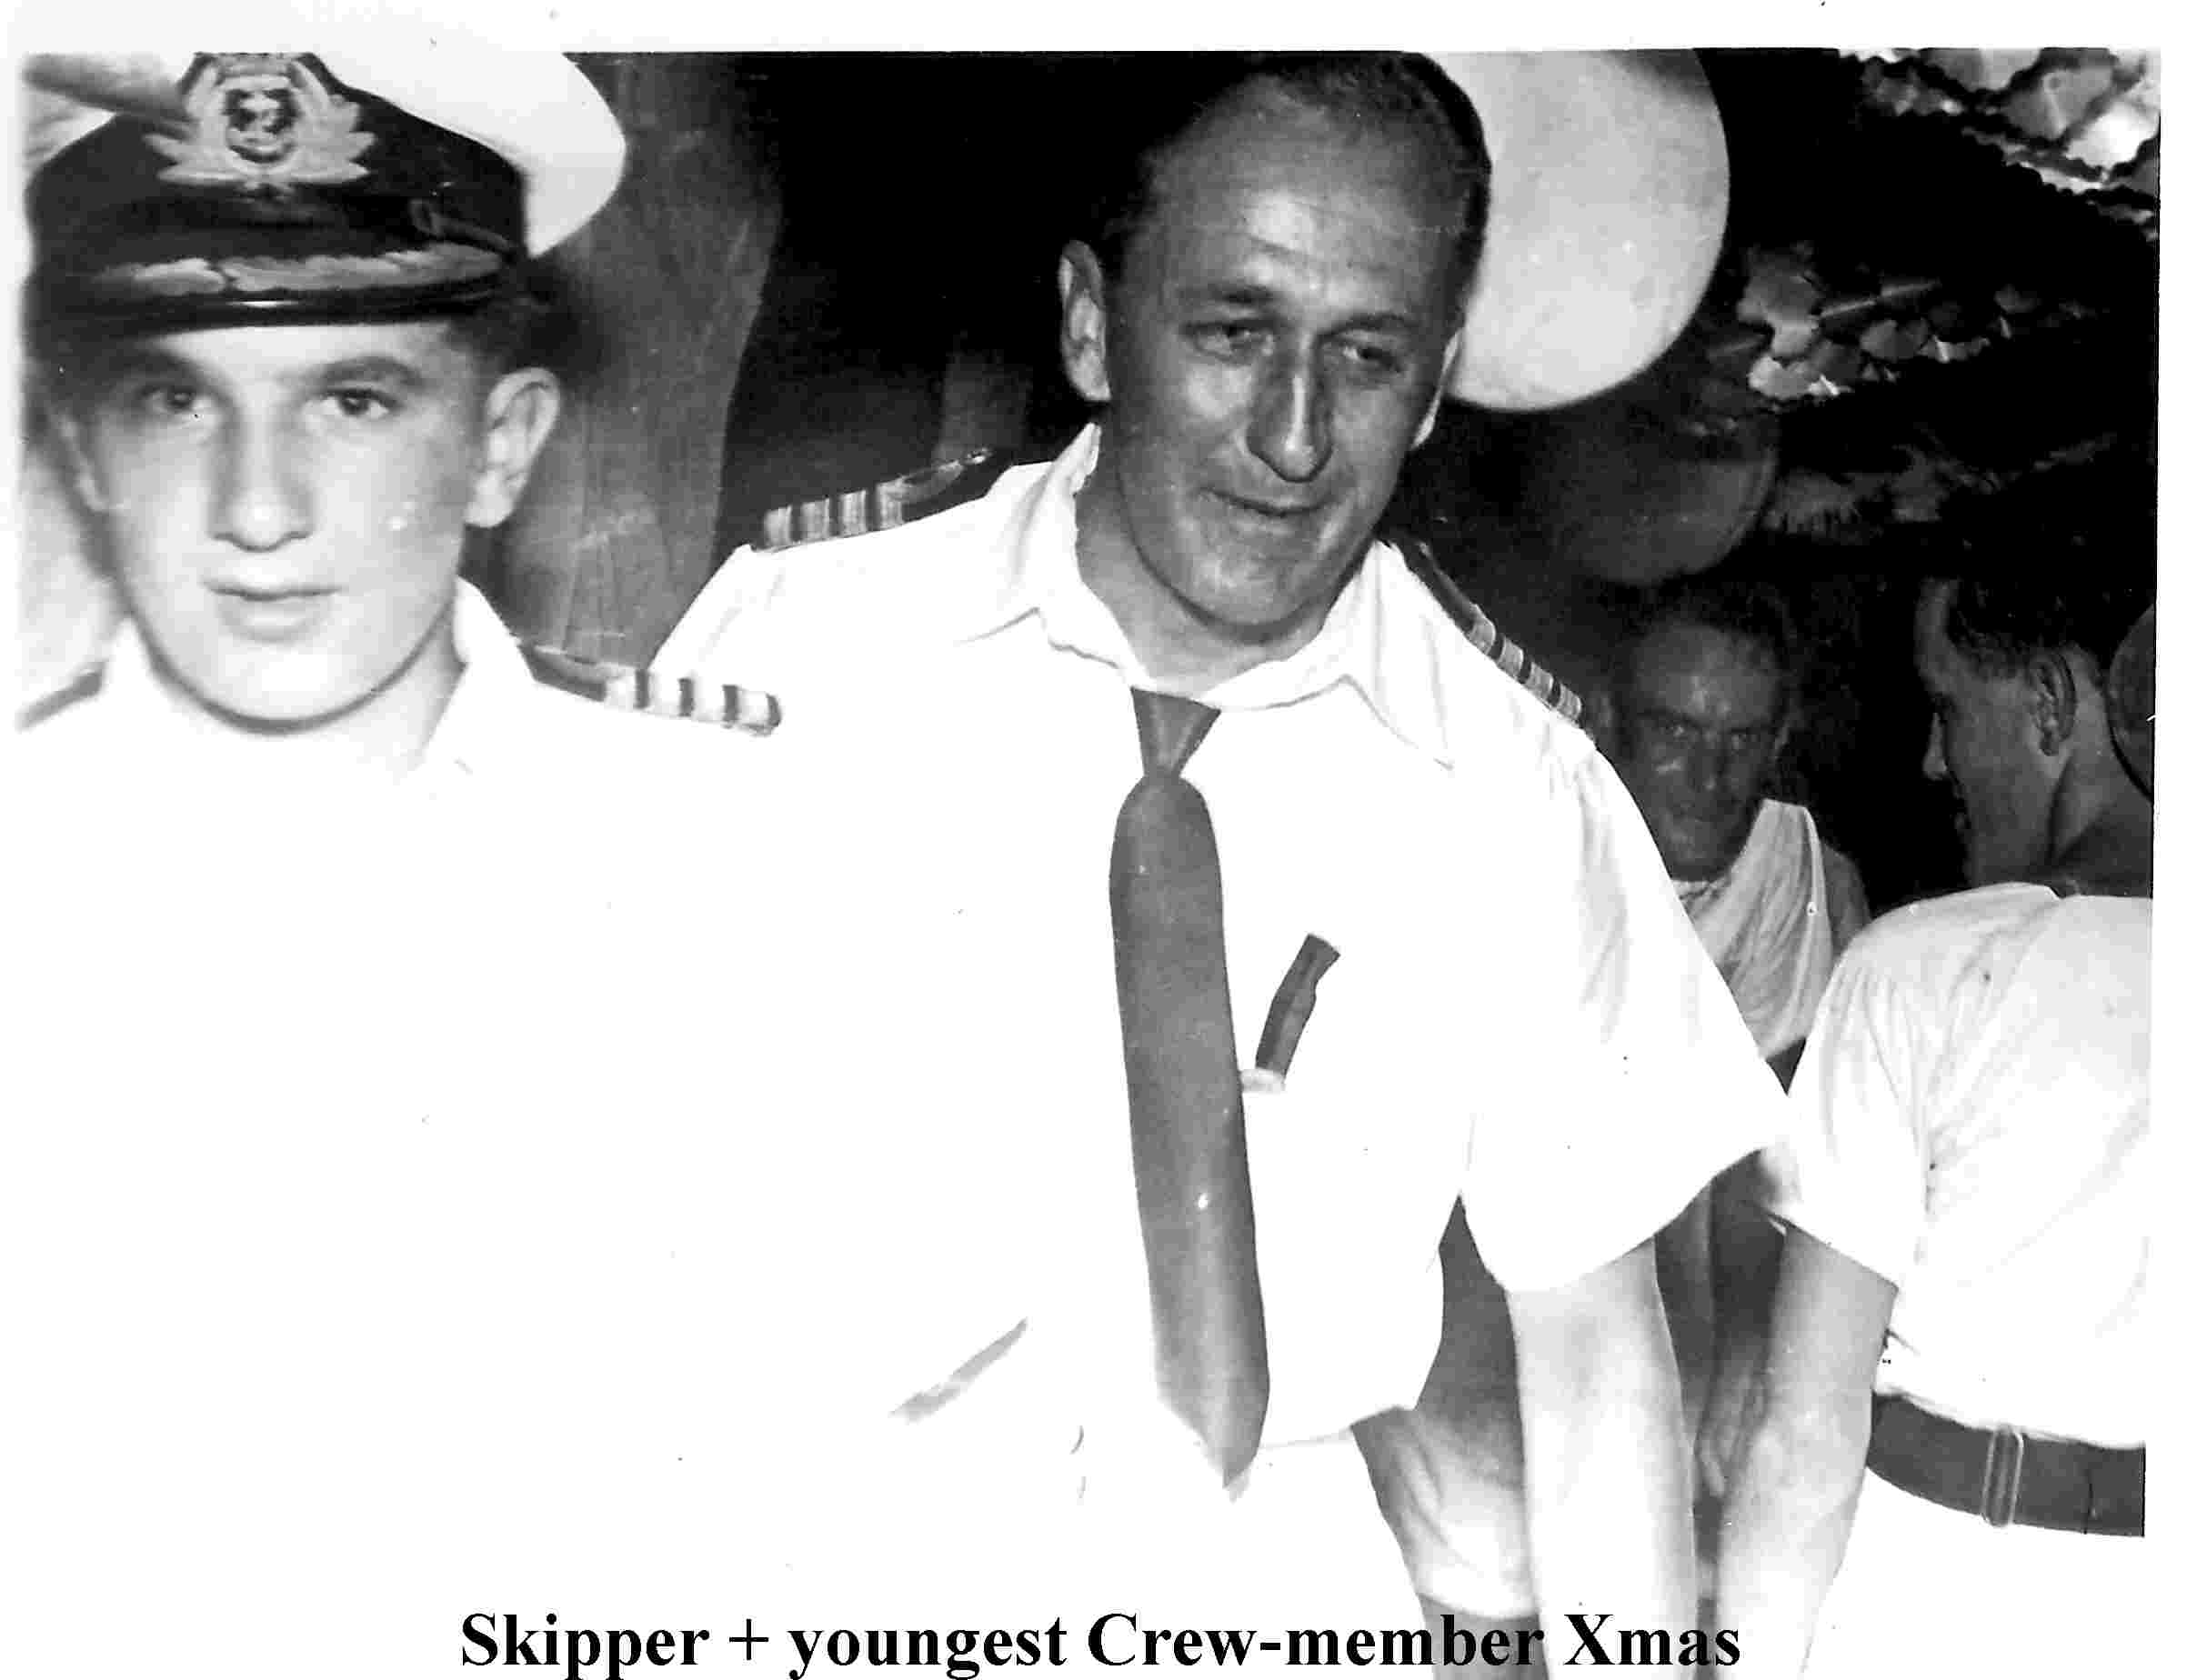 Youngest crew member an Skipper Xmas 1956